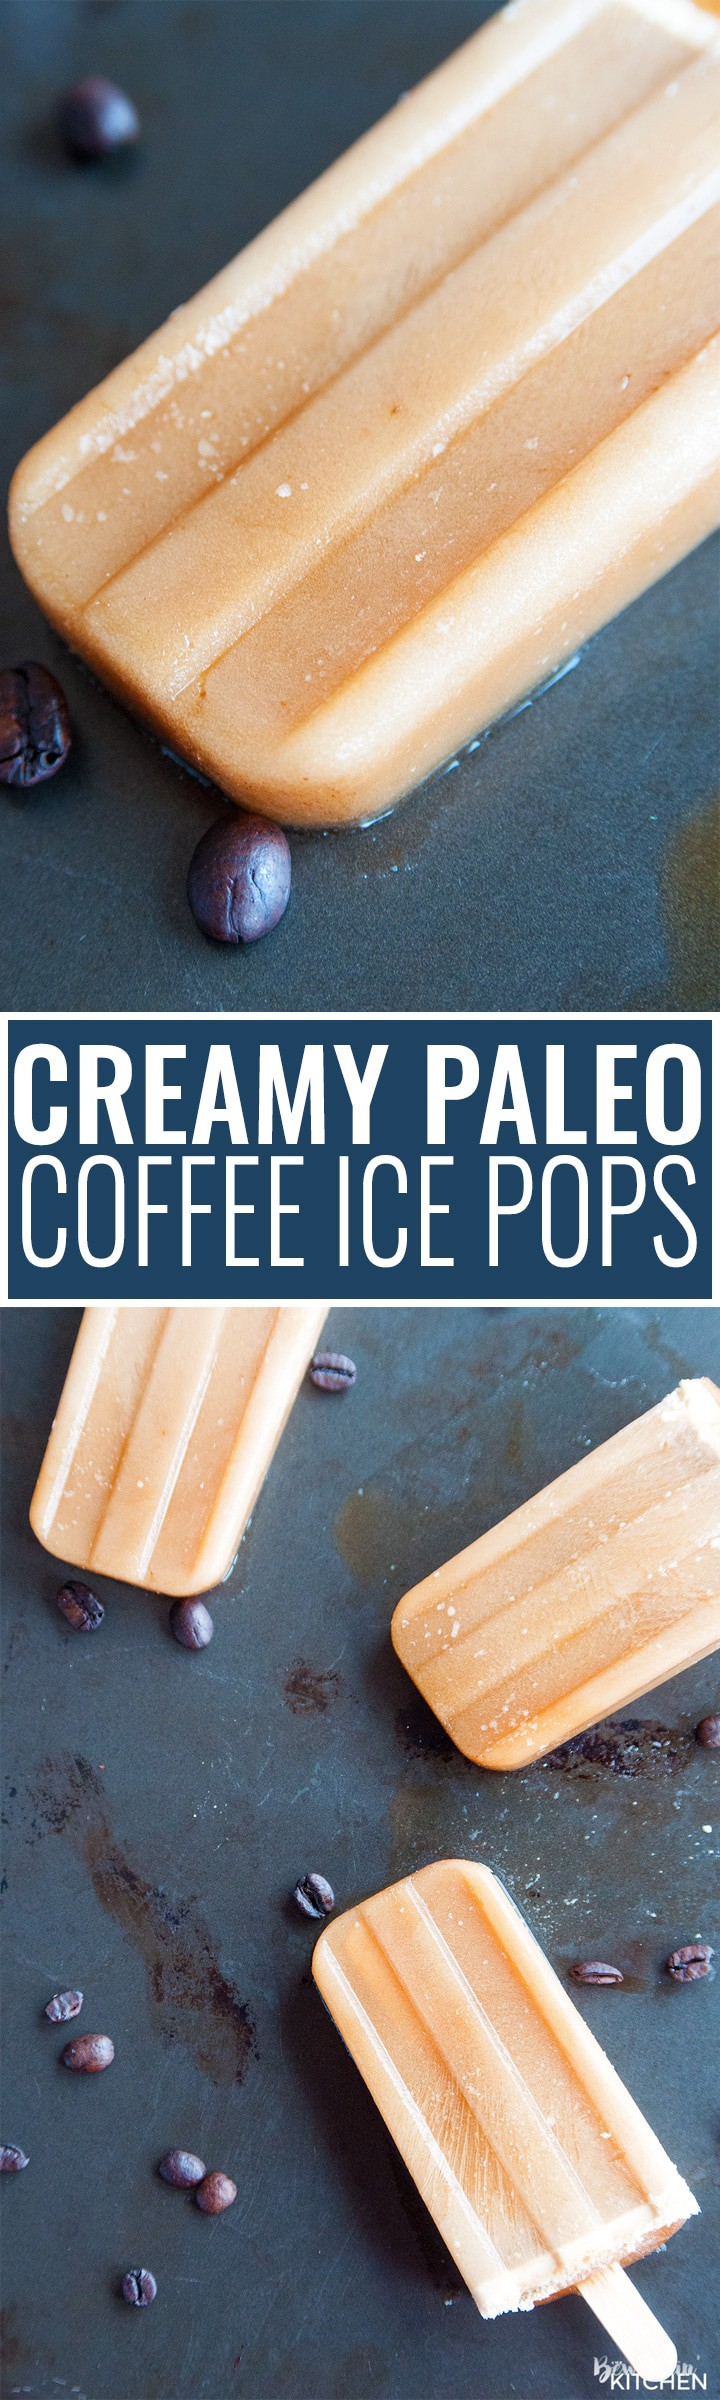 Creamy paleo coffee ice pops. These homemade healthy popsicles are made with two ingredients: coffee and coconut oil. Paleo, 21 day fix, keto diet, and whole30 friendly!